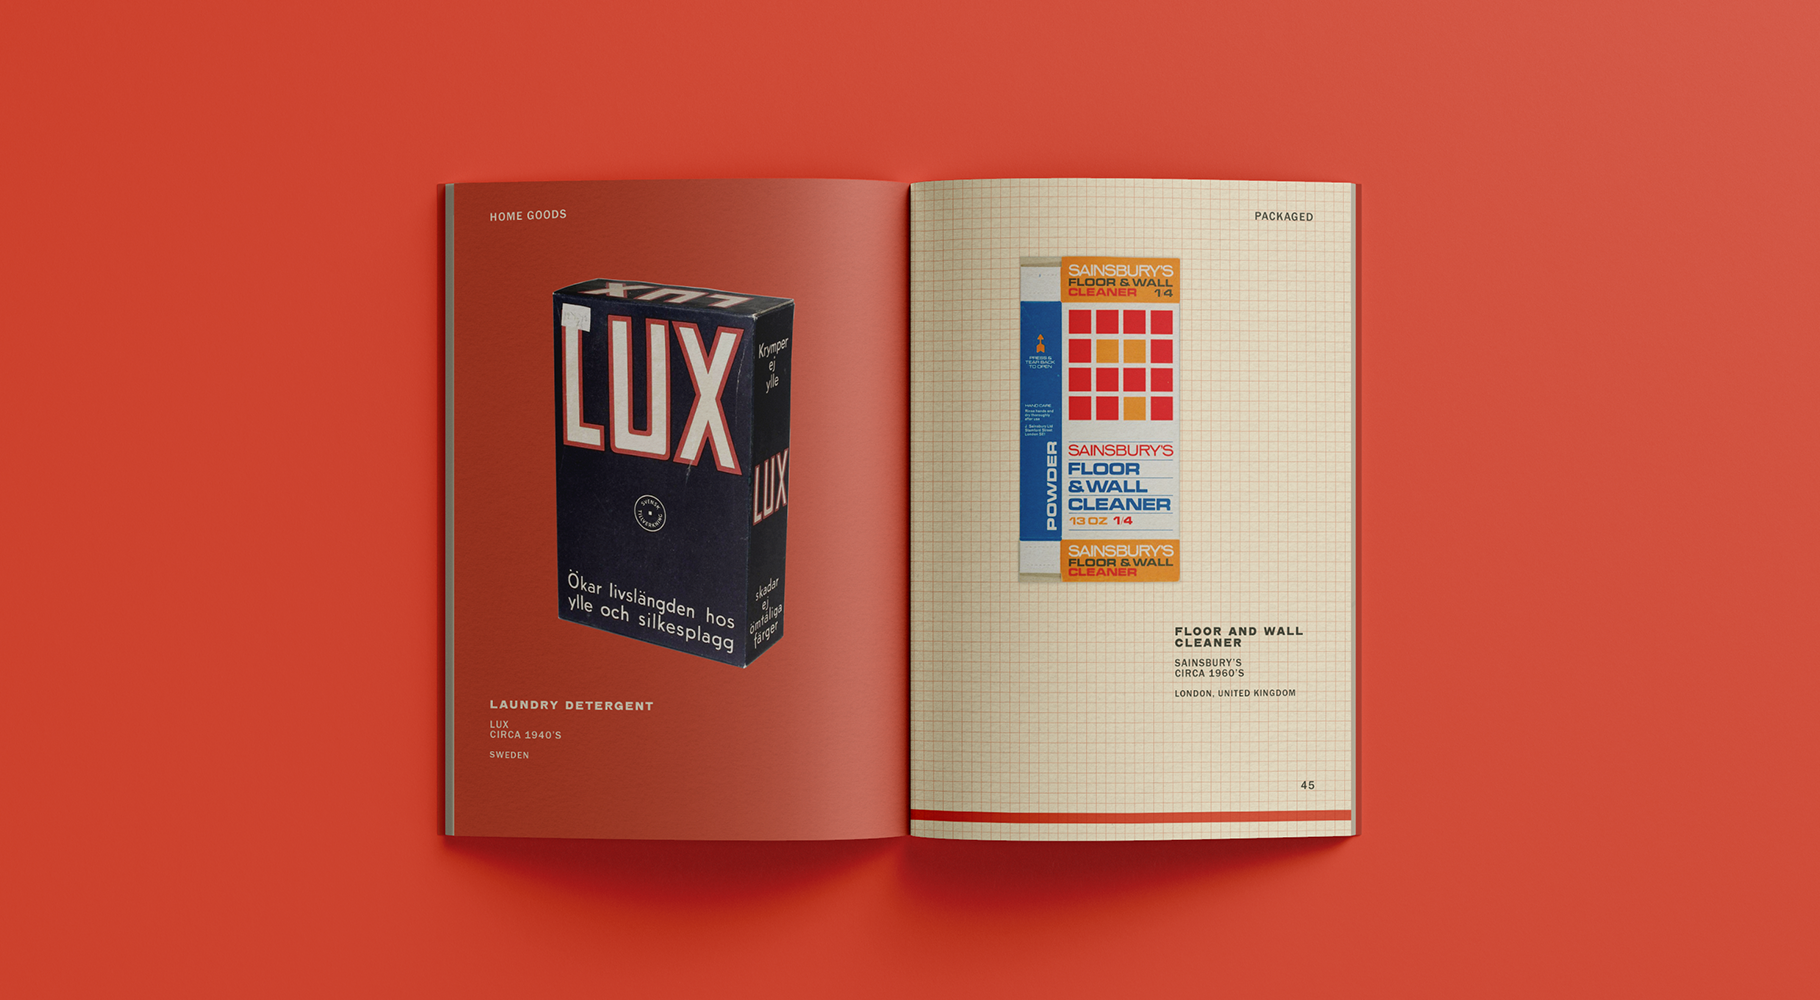 A spread of a catalogue, featuring an image of Lux brand laundry soap and Sainsbury brand floor cleaner.